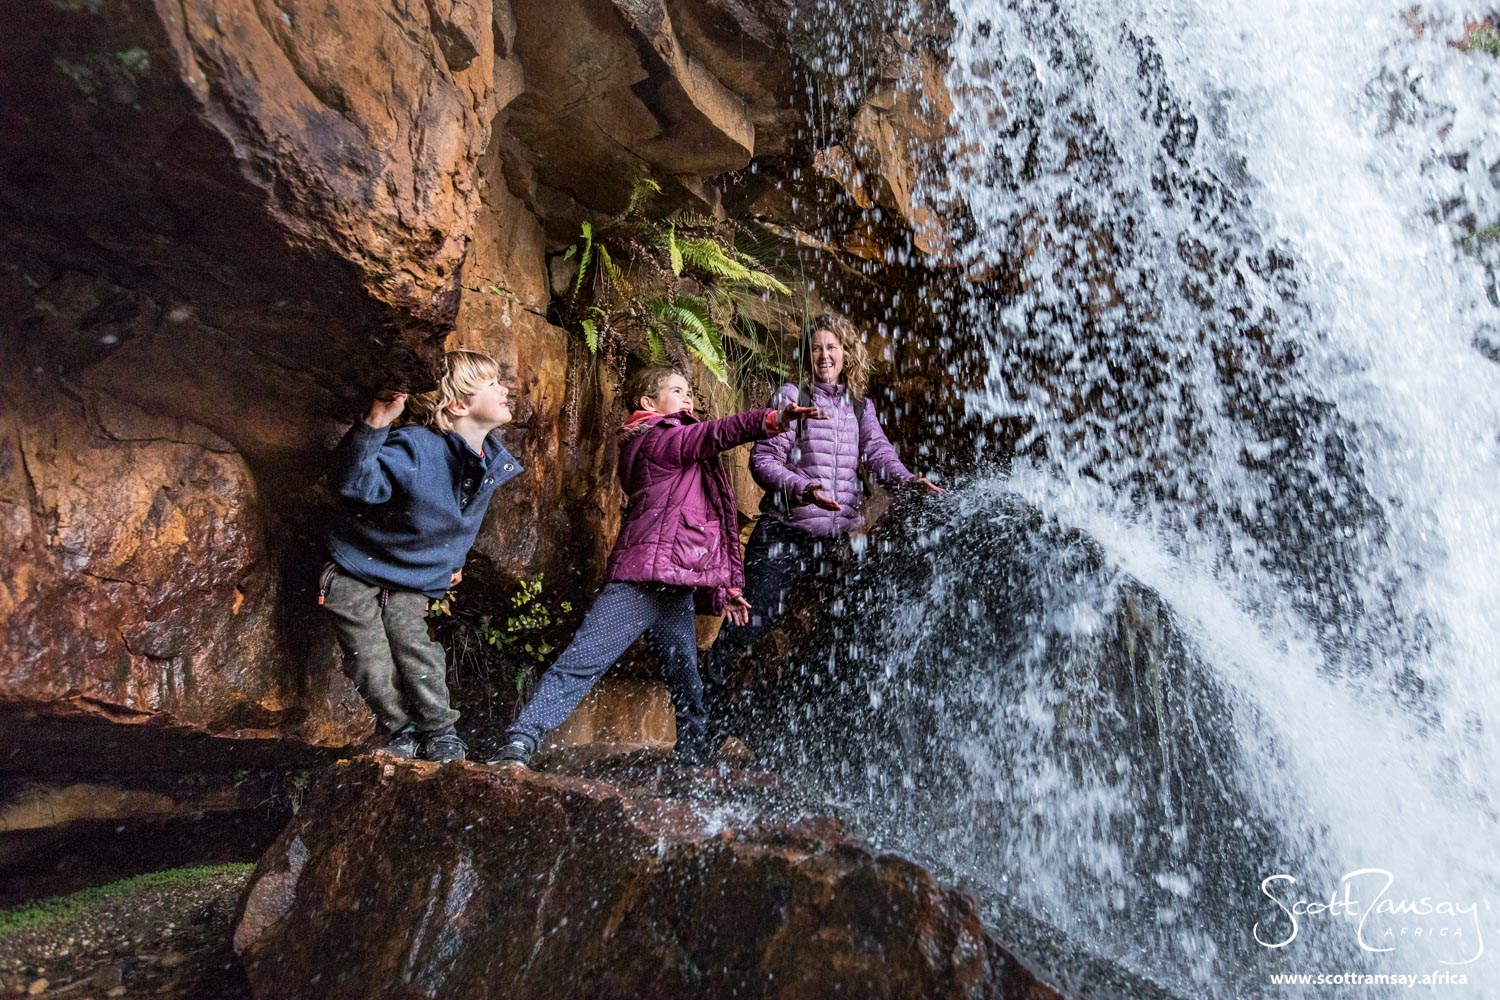 My friends Gabriel, Azara and Jax getting elemental with the surging rivers and waterfalls of the Cederberg in winter.